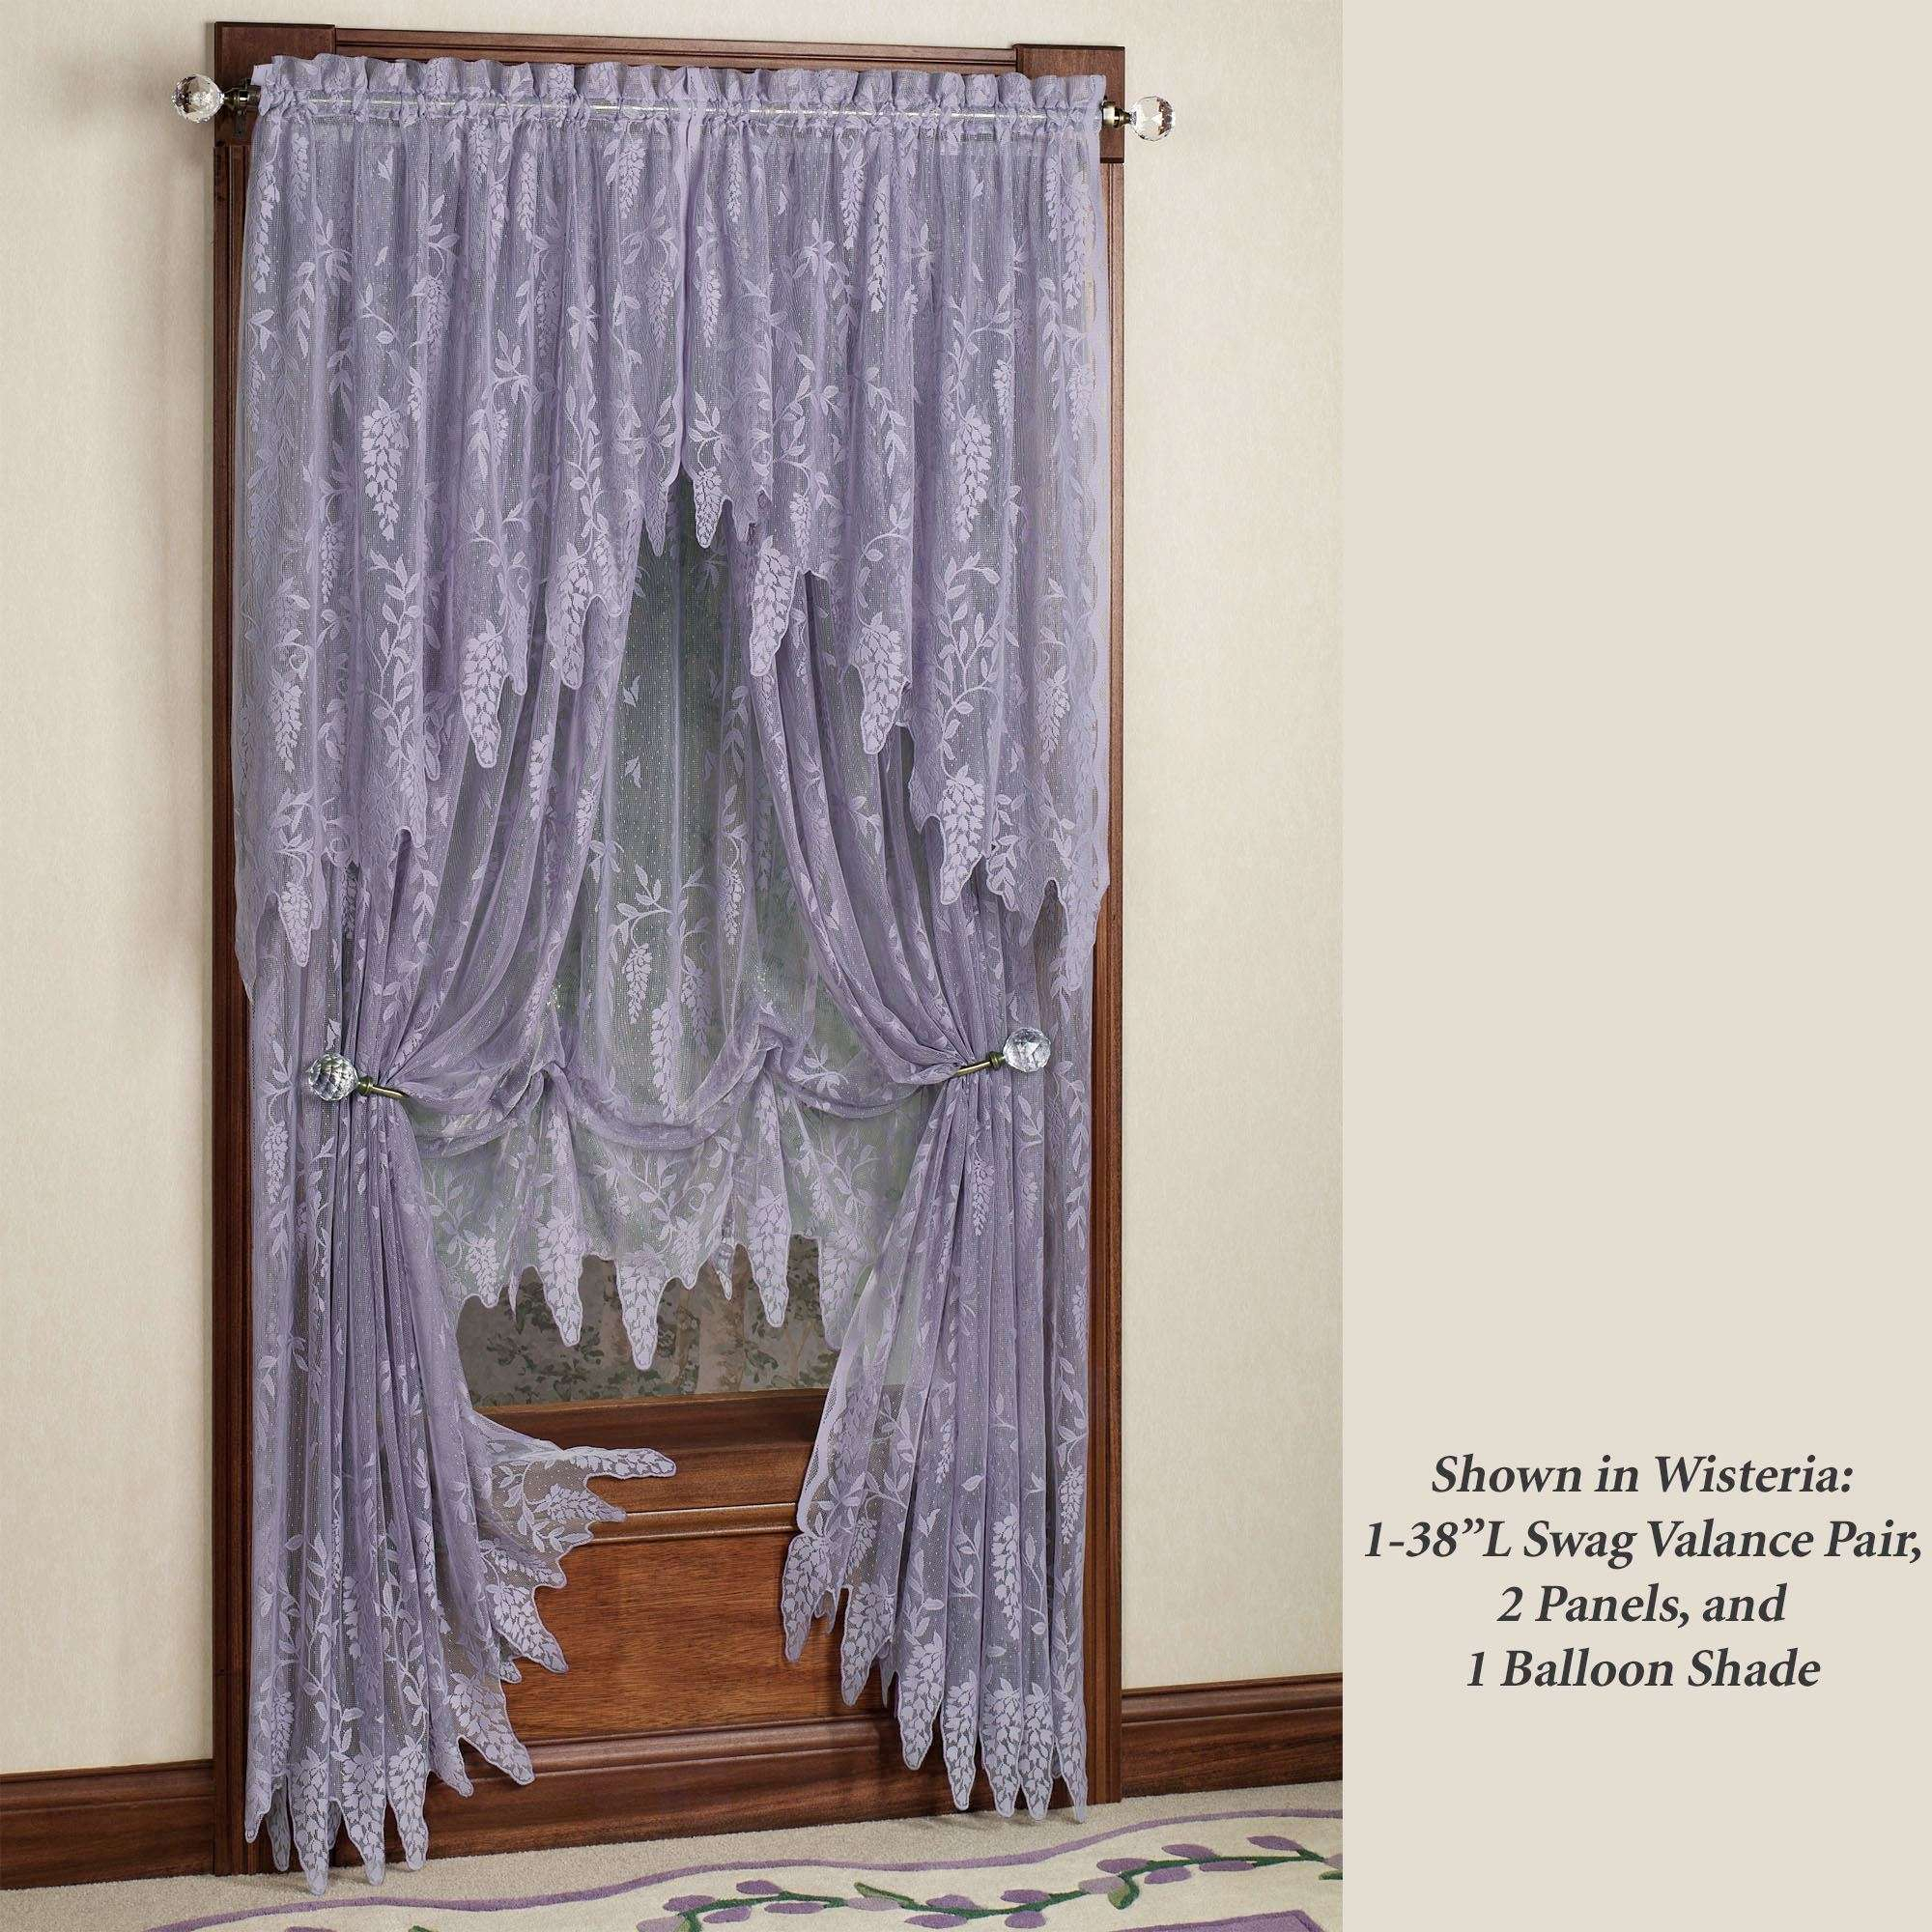 Curtains Lace Fabric Lac Sheer Nets Curtain Ideas Decorating Inside Luxurious Old World Style Lace Window Curtain Panels (View 19 of 20)